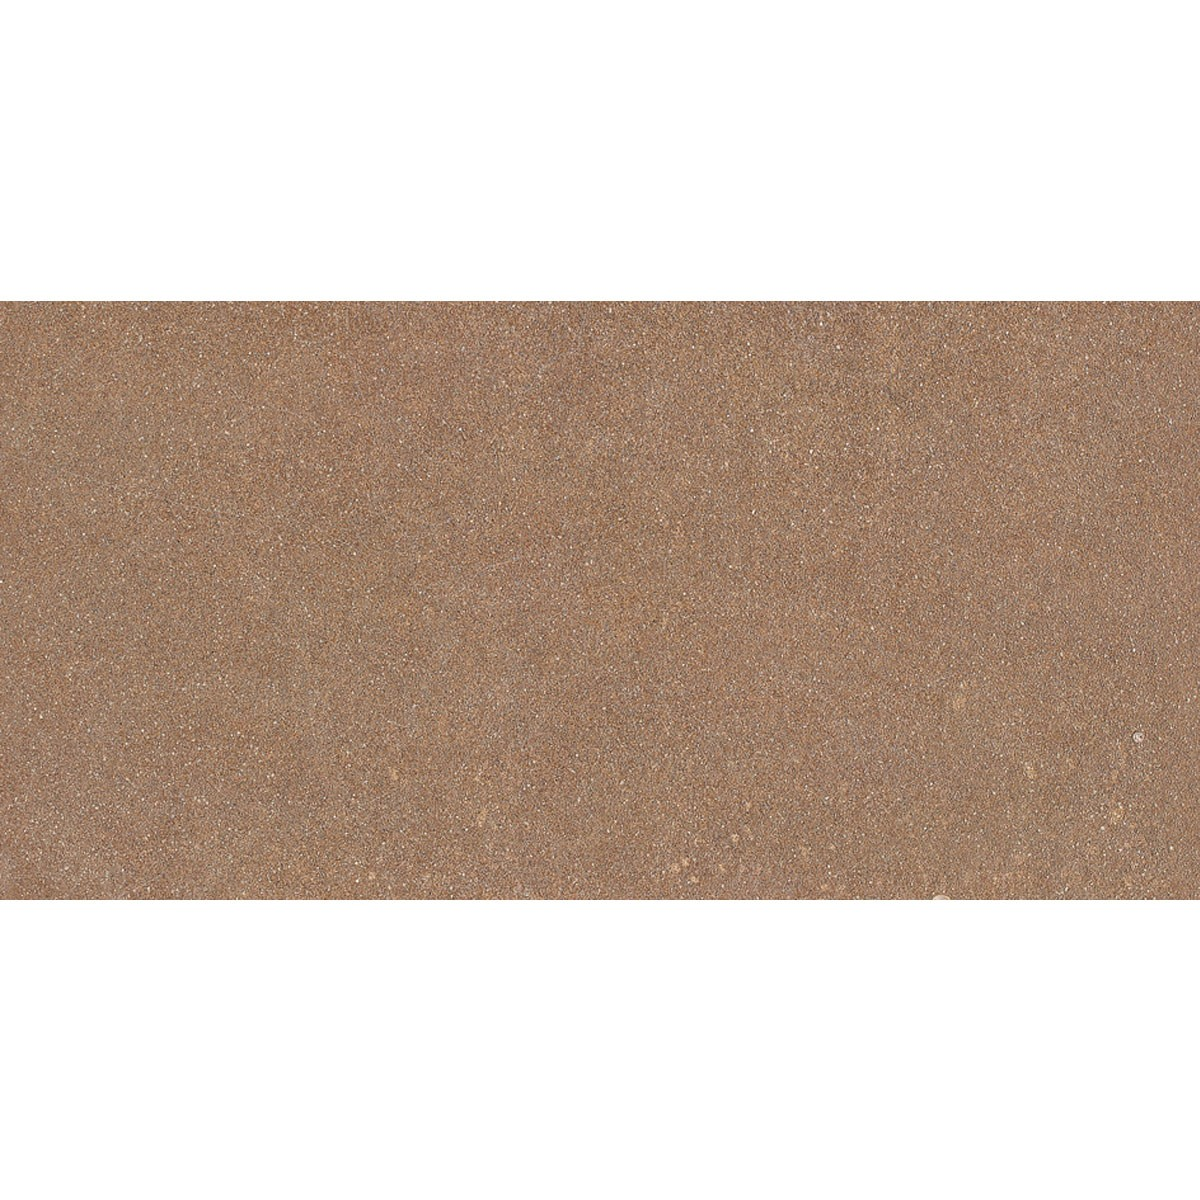 24 x 12 In. Brown Porcelain Floor Tile - 8 Pcs/Case (15.50 sq.ft/Case) (BS60D)